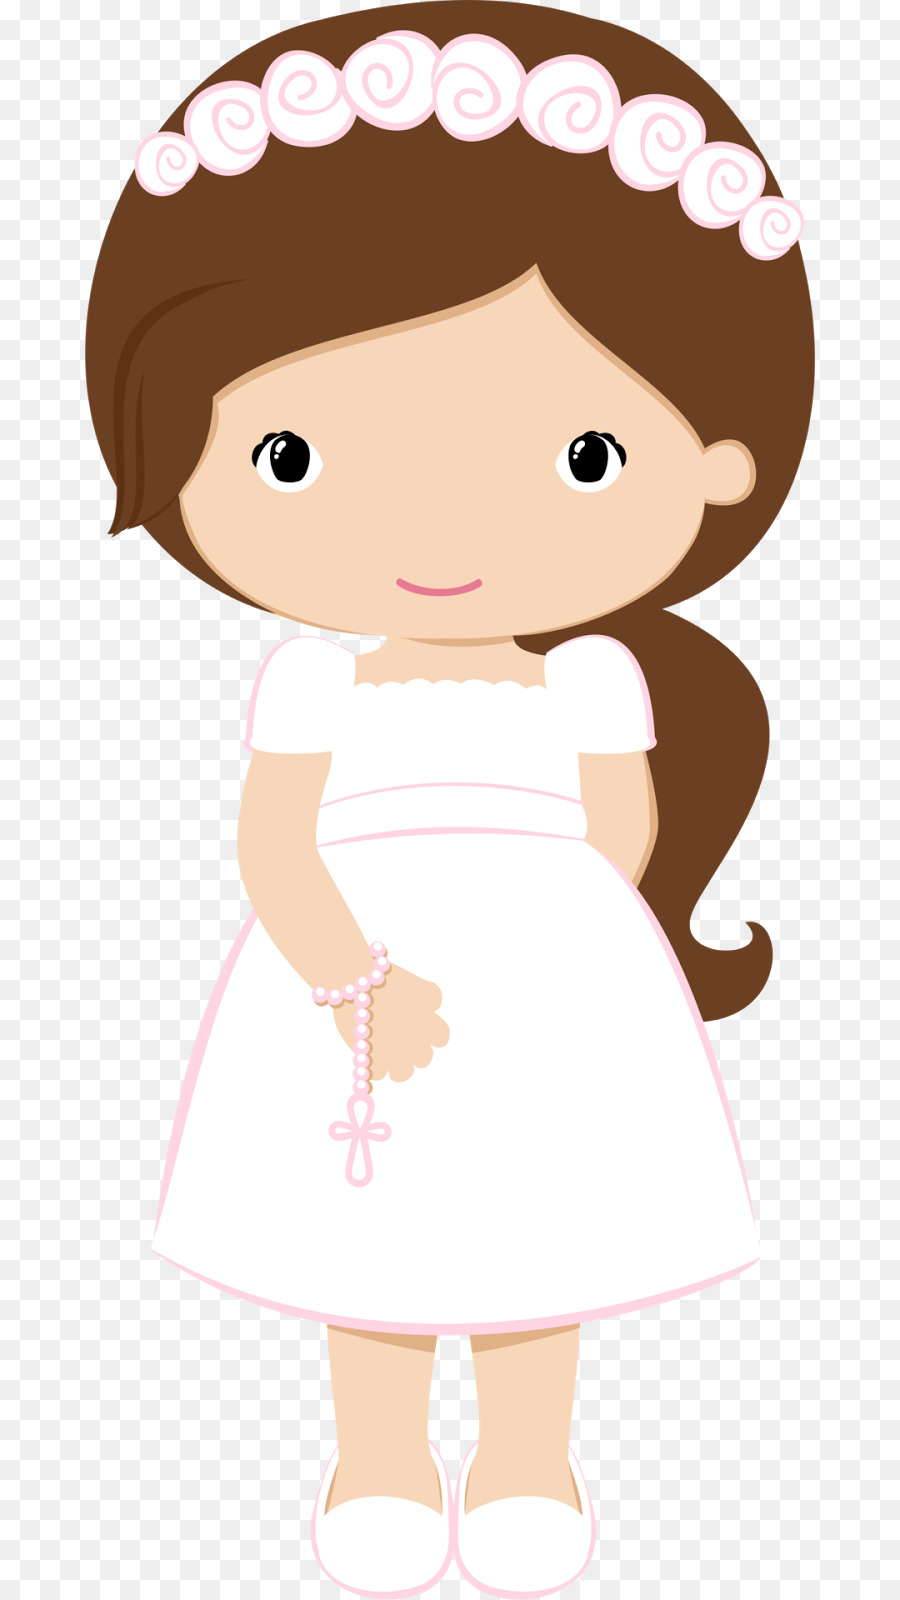 416 First Communion free clipart.